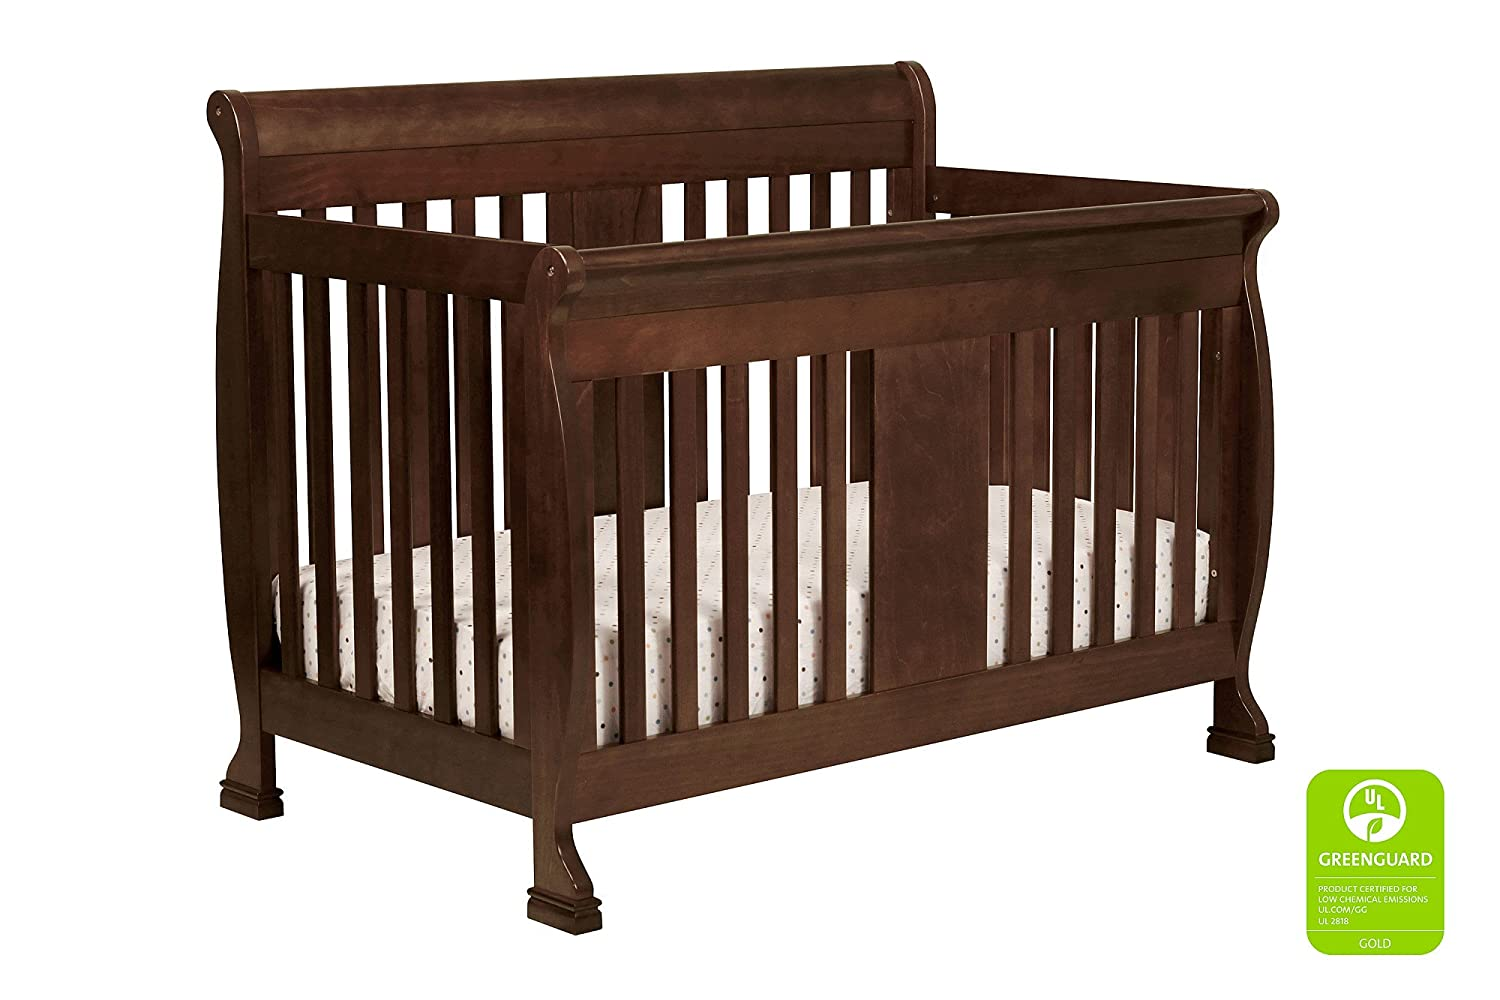 Davinci Porter 4-in-1 Crib Full Size Conversion Kit Bed Rails - Espresso POR-M5789-WH